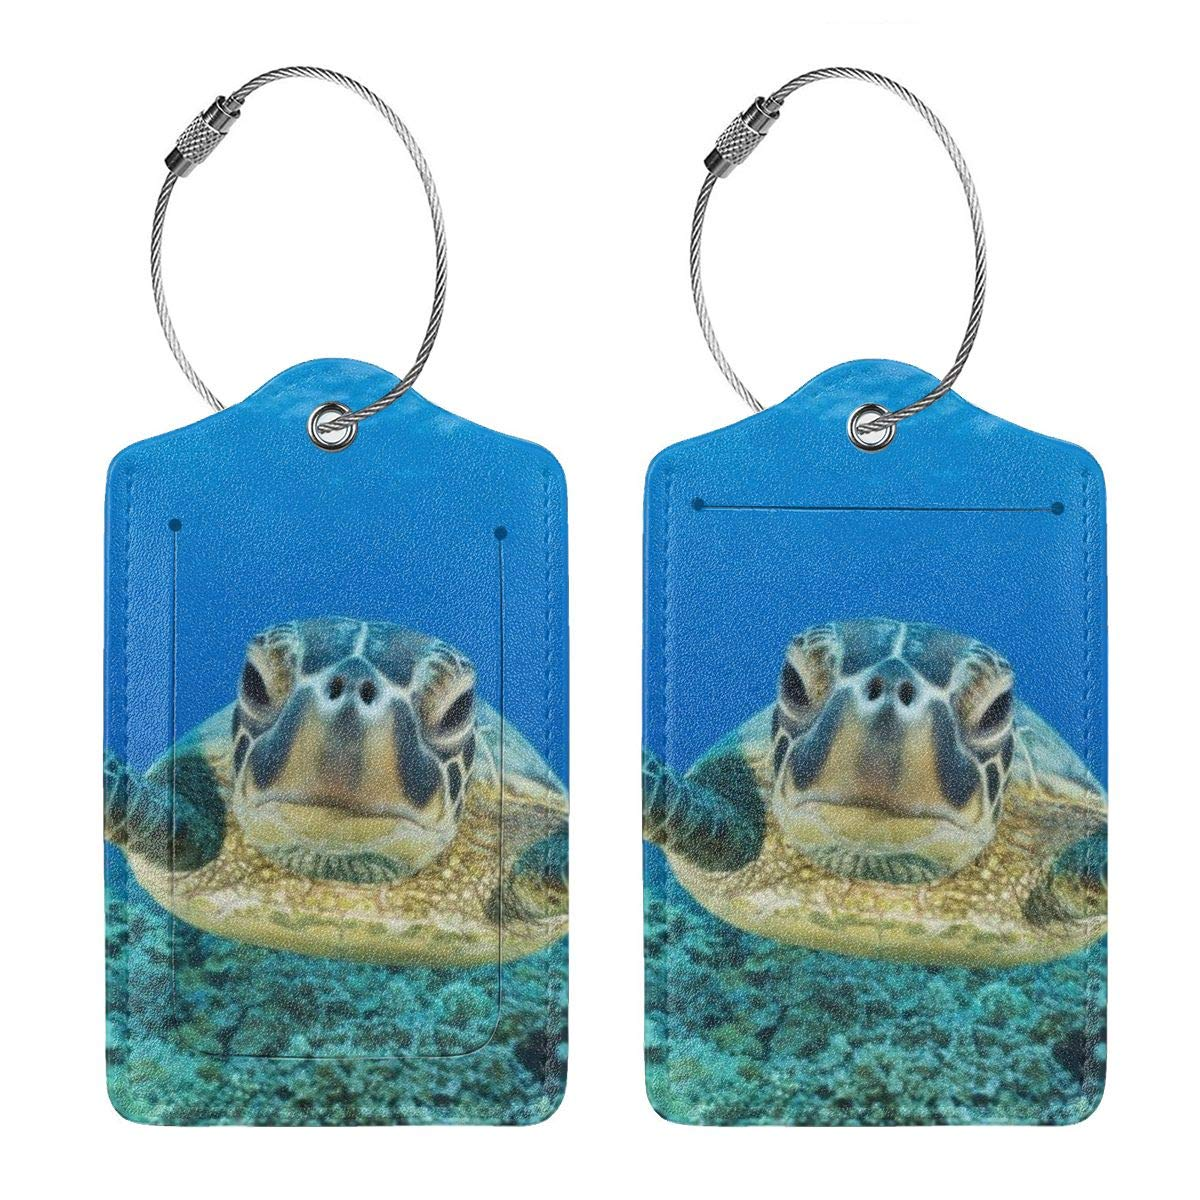 Sea Turtle Luggage Tag Label Travel Bag Label With Privacy Cover Luggage Tag Leather Personalized Suitcase Tag Travel Accessories 2